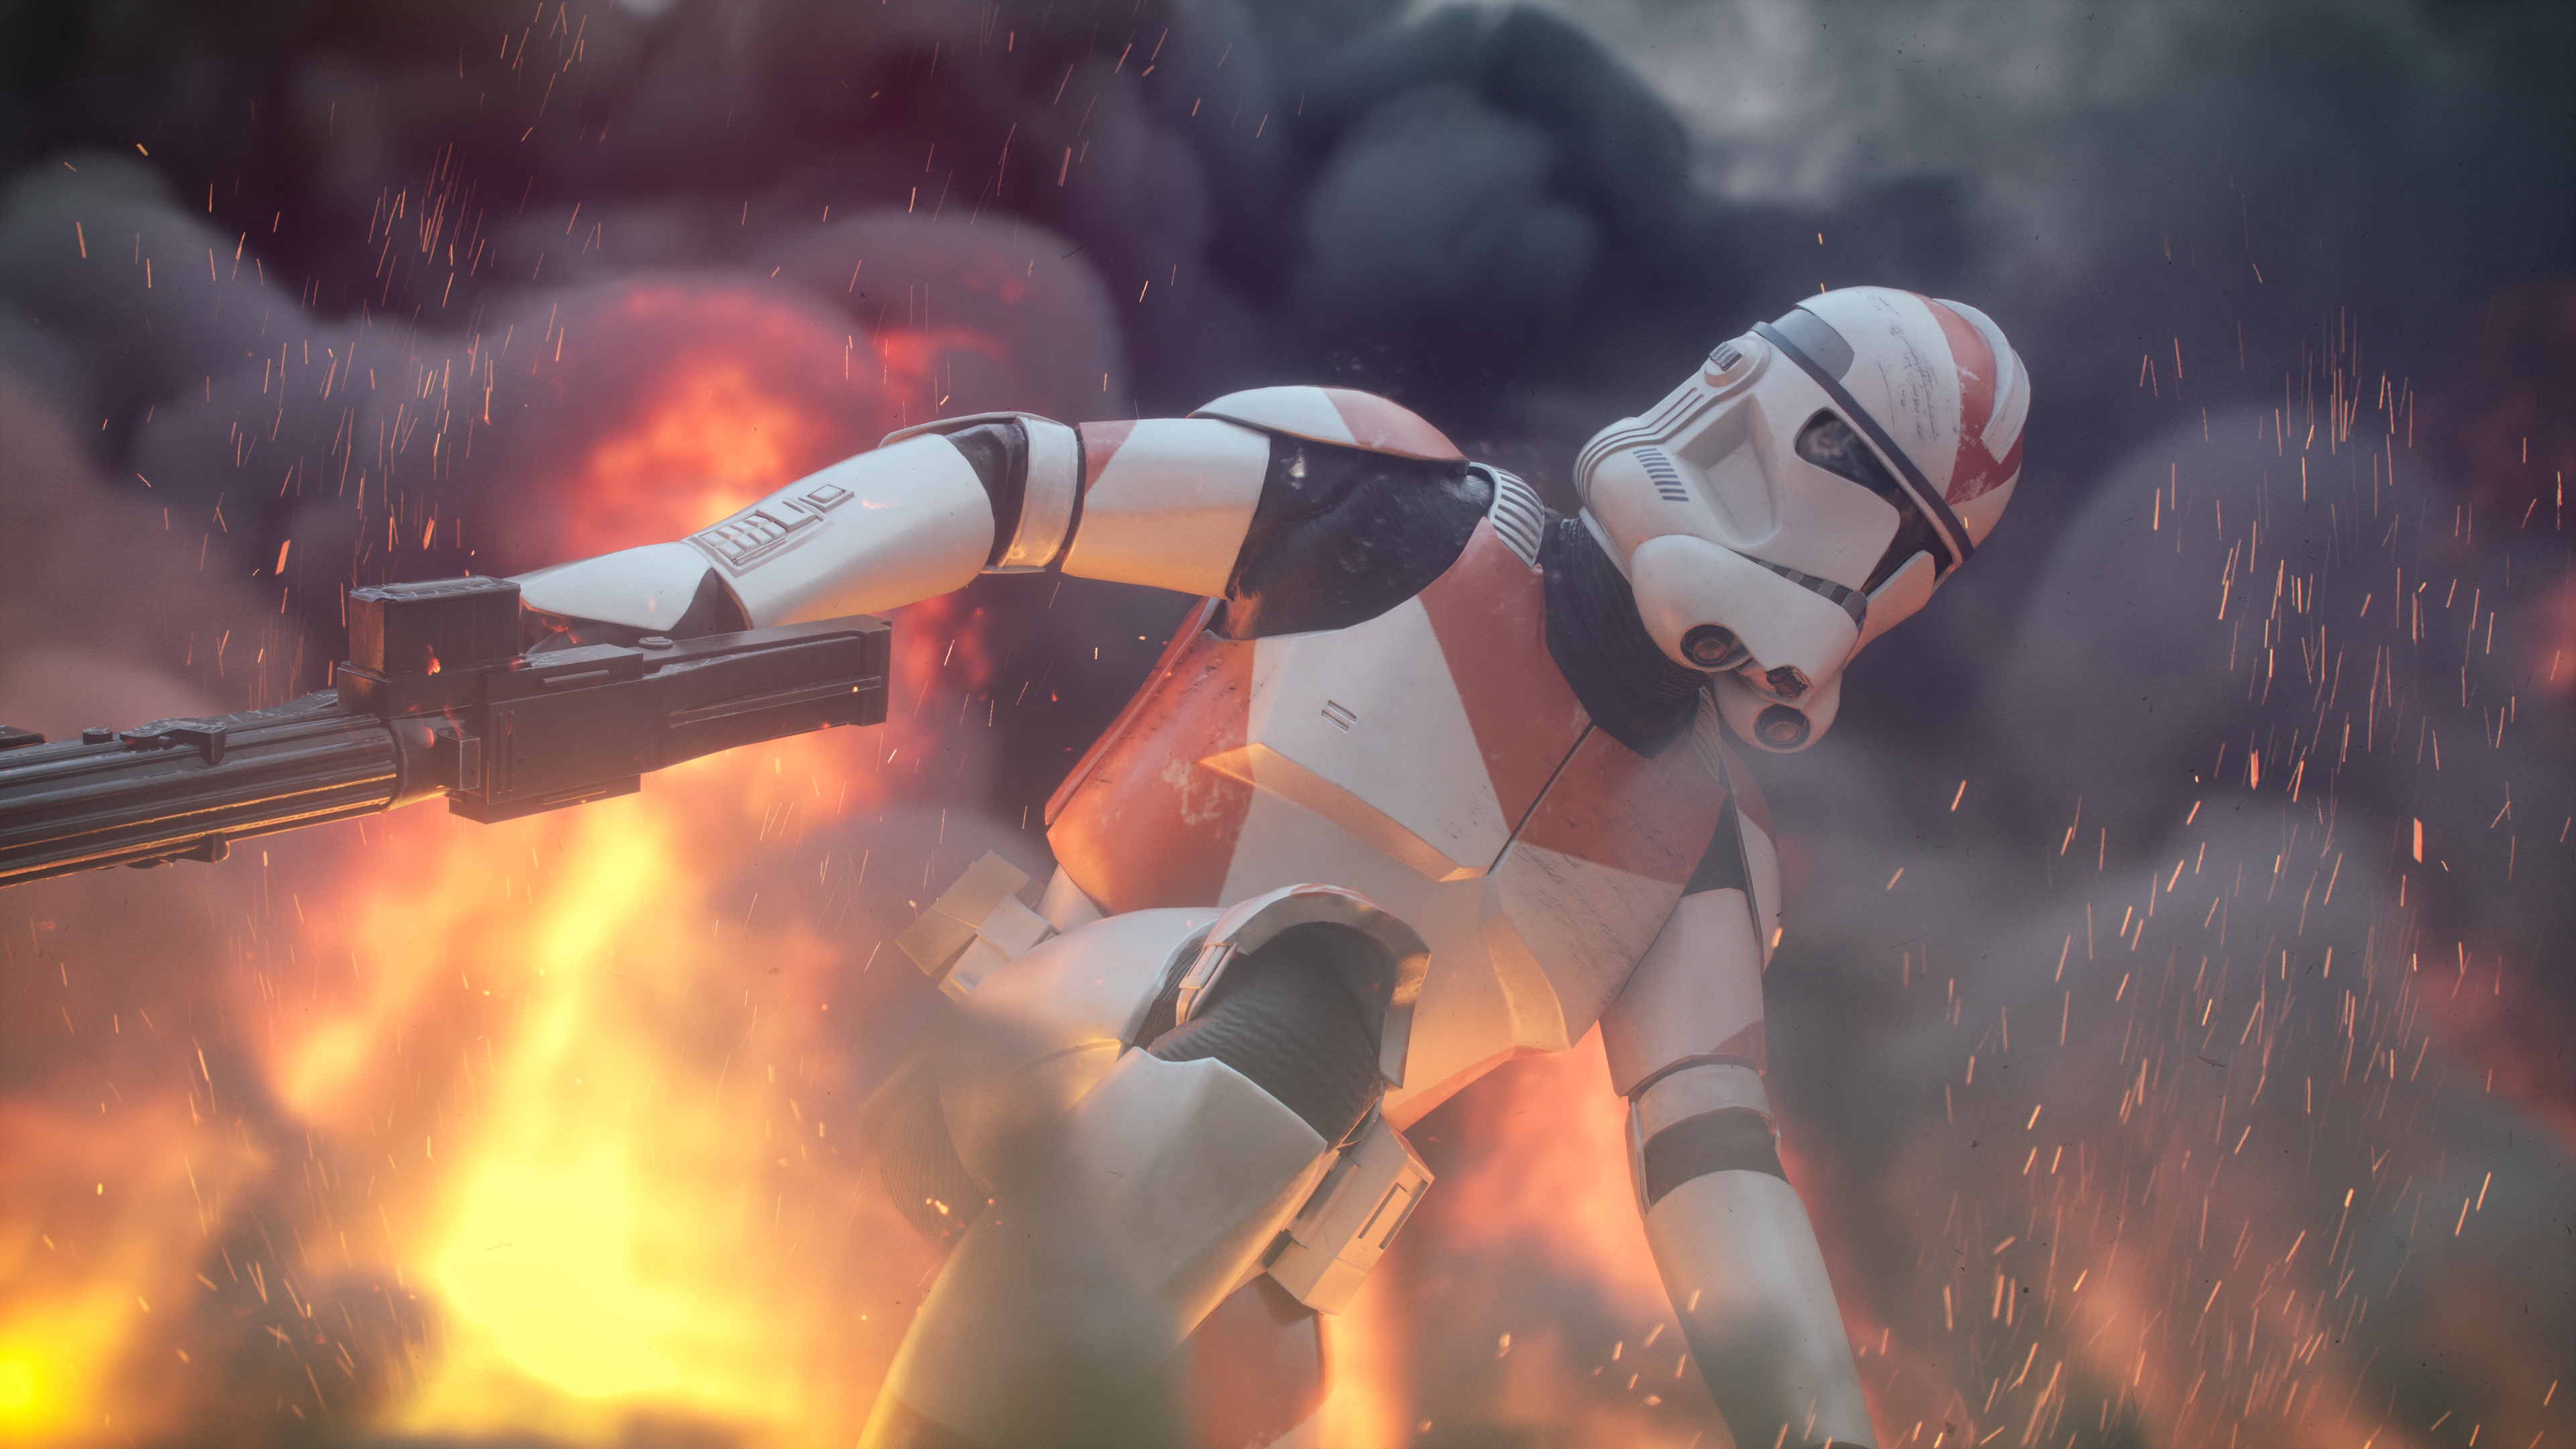 Clone Trooper 212th Battalion 4k Ultra Hd Wallpaper Background Image 3840x2160 Id 904736 Wallpaper Abyss